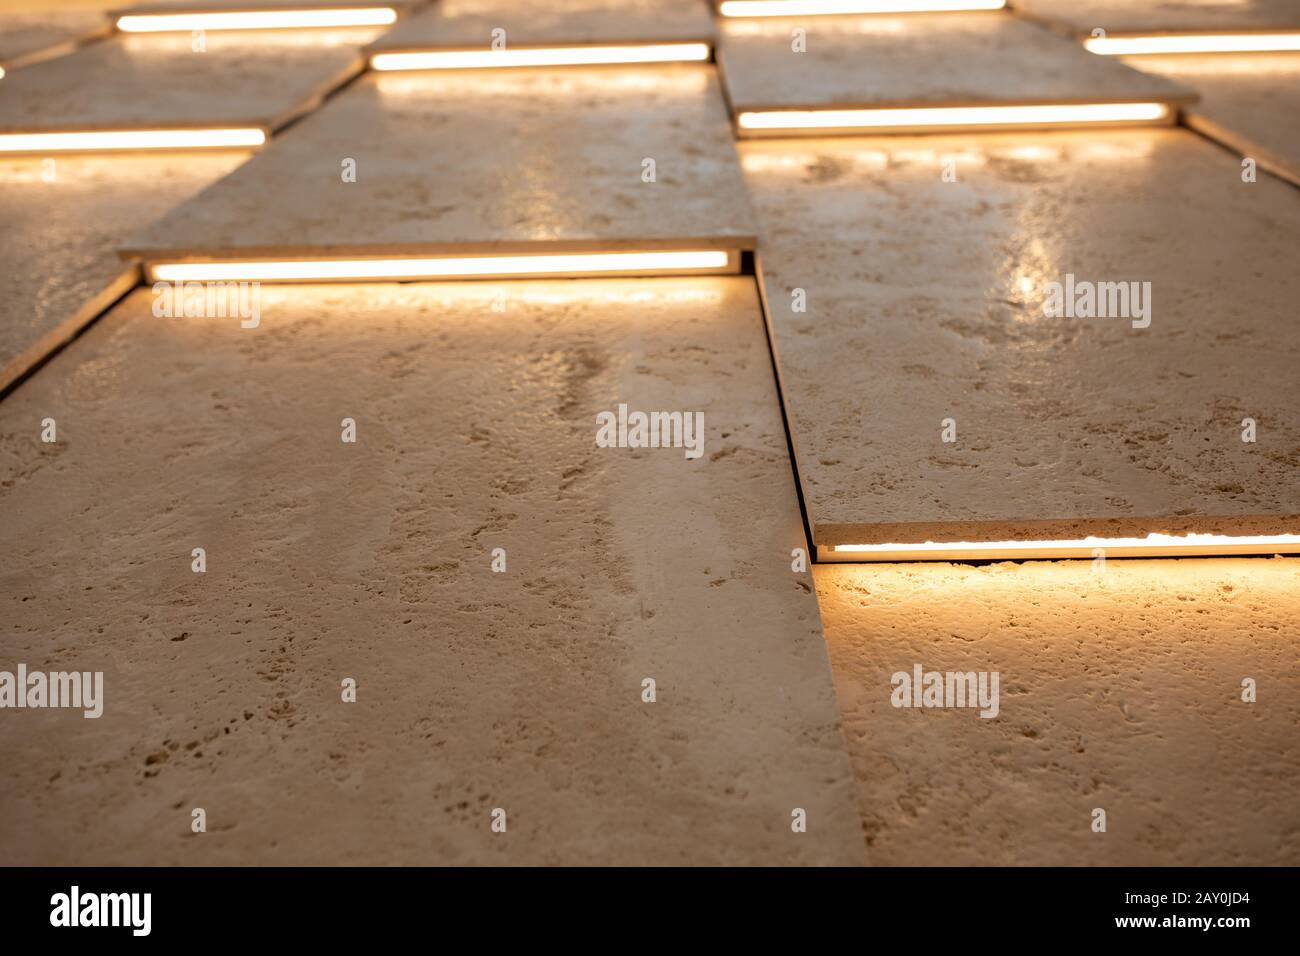 Wall or ceiling viewed in backlight. Tilt view of lath panels resembling structure of blinds or shutters. Abstract modern architecture or interior Stock Photo